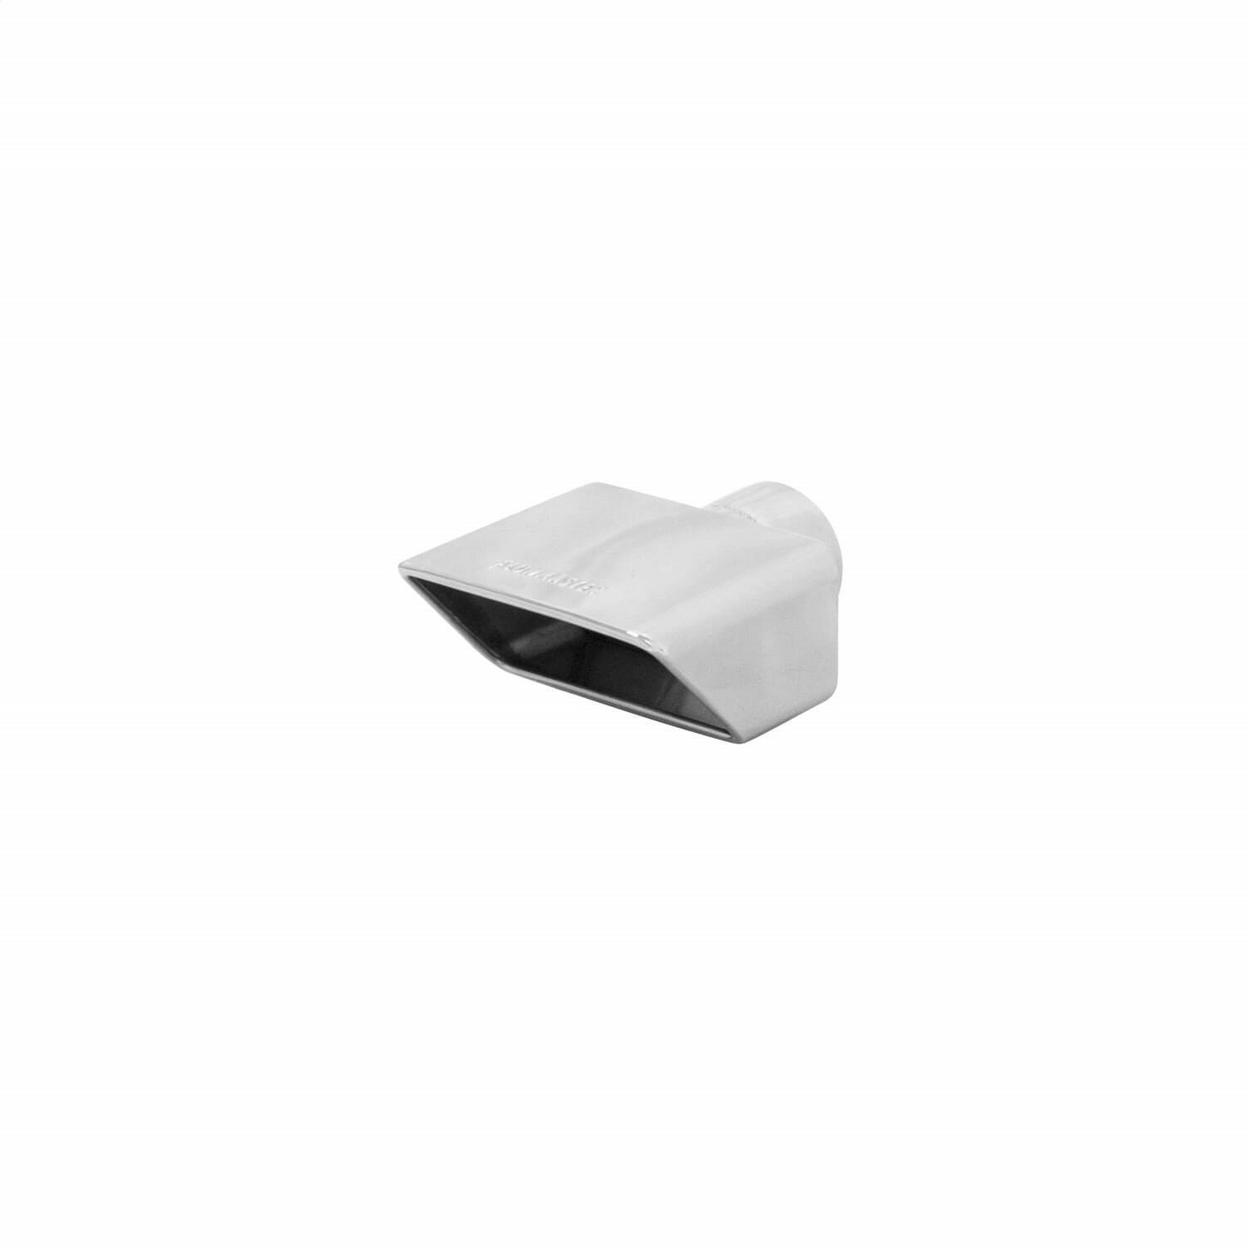 Exhaust Tip - 3.0 x 5.5 Polished Angle Rolled Edge Fits 2.5 in. Tubing